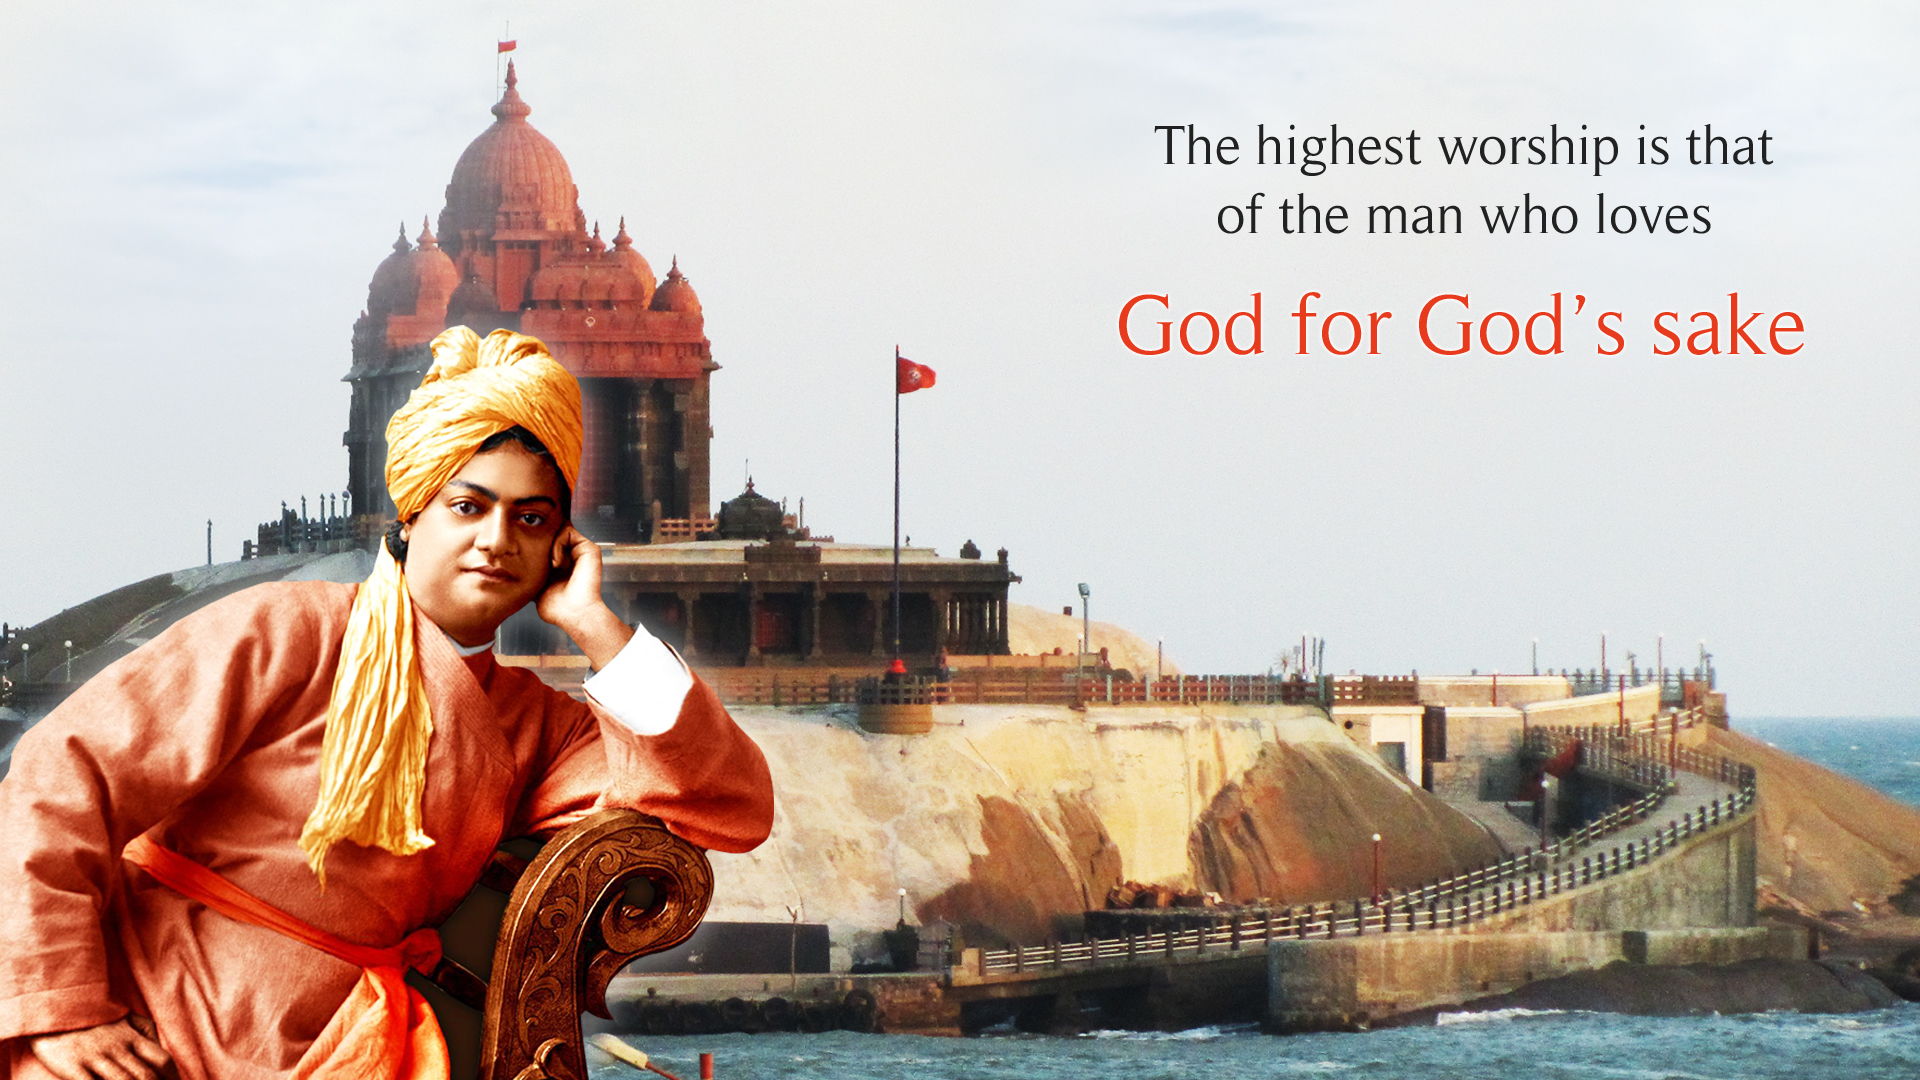 Swami Vivekanandas Wallpaper KNOWLEDGE BANK 1920x1080